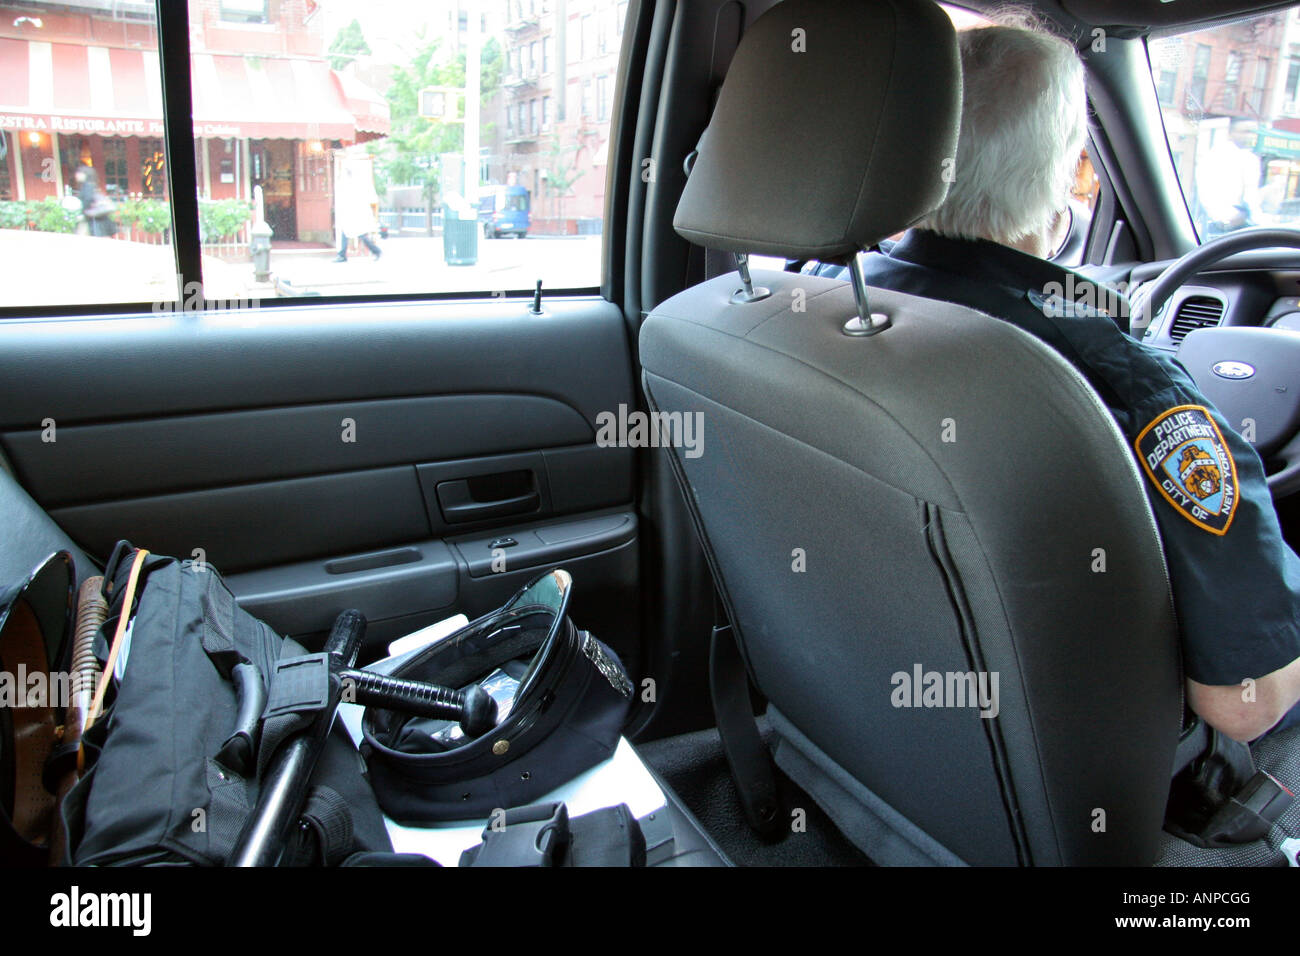 inside a new york city police car stock photo royalty free image 15577599 alamy. Black Bedroom Furniture Sets. Home Design Ideas